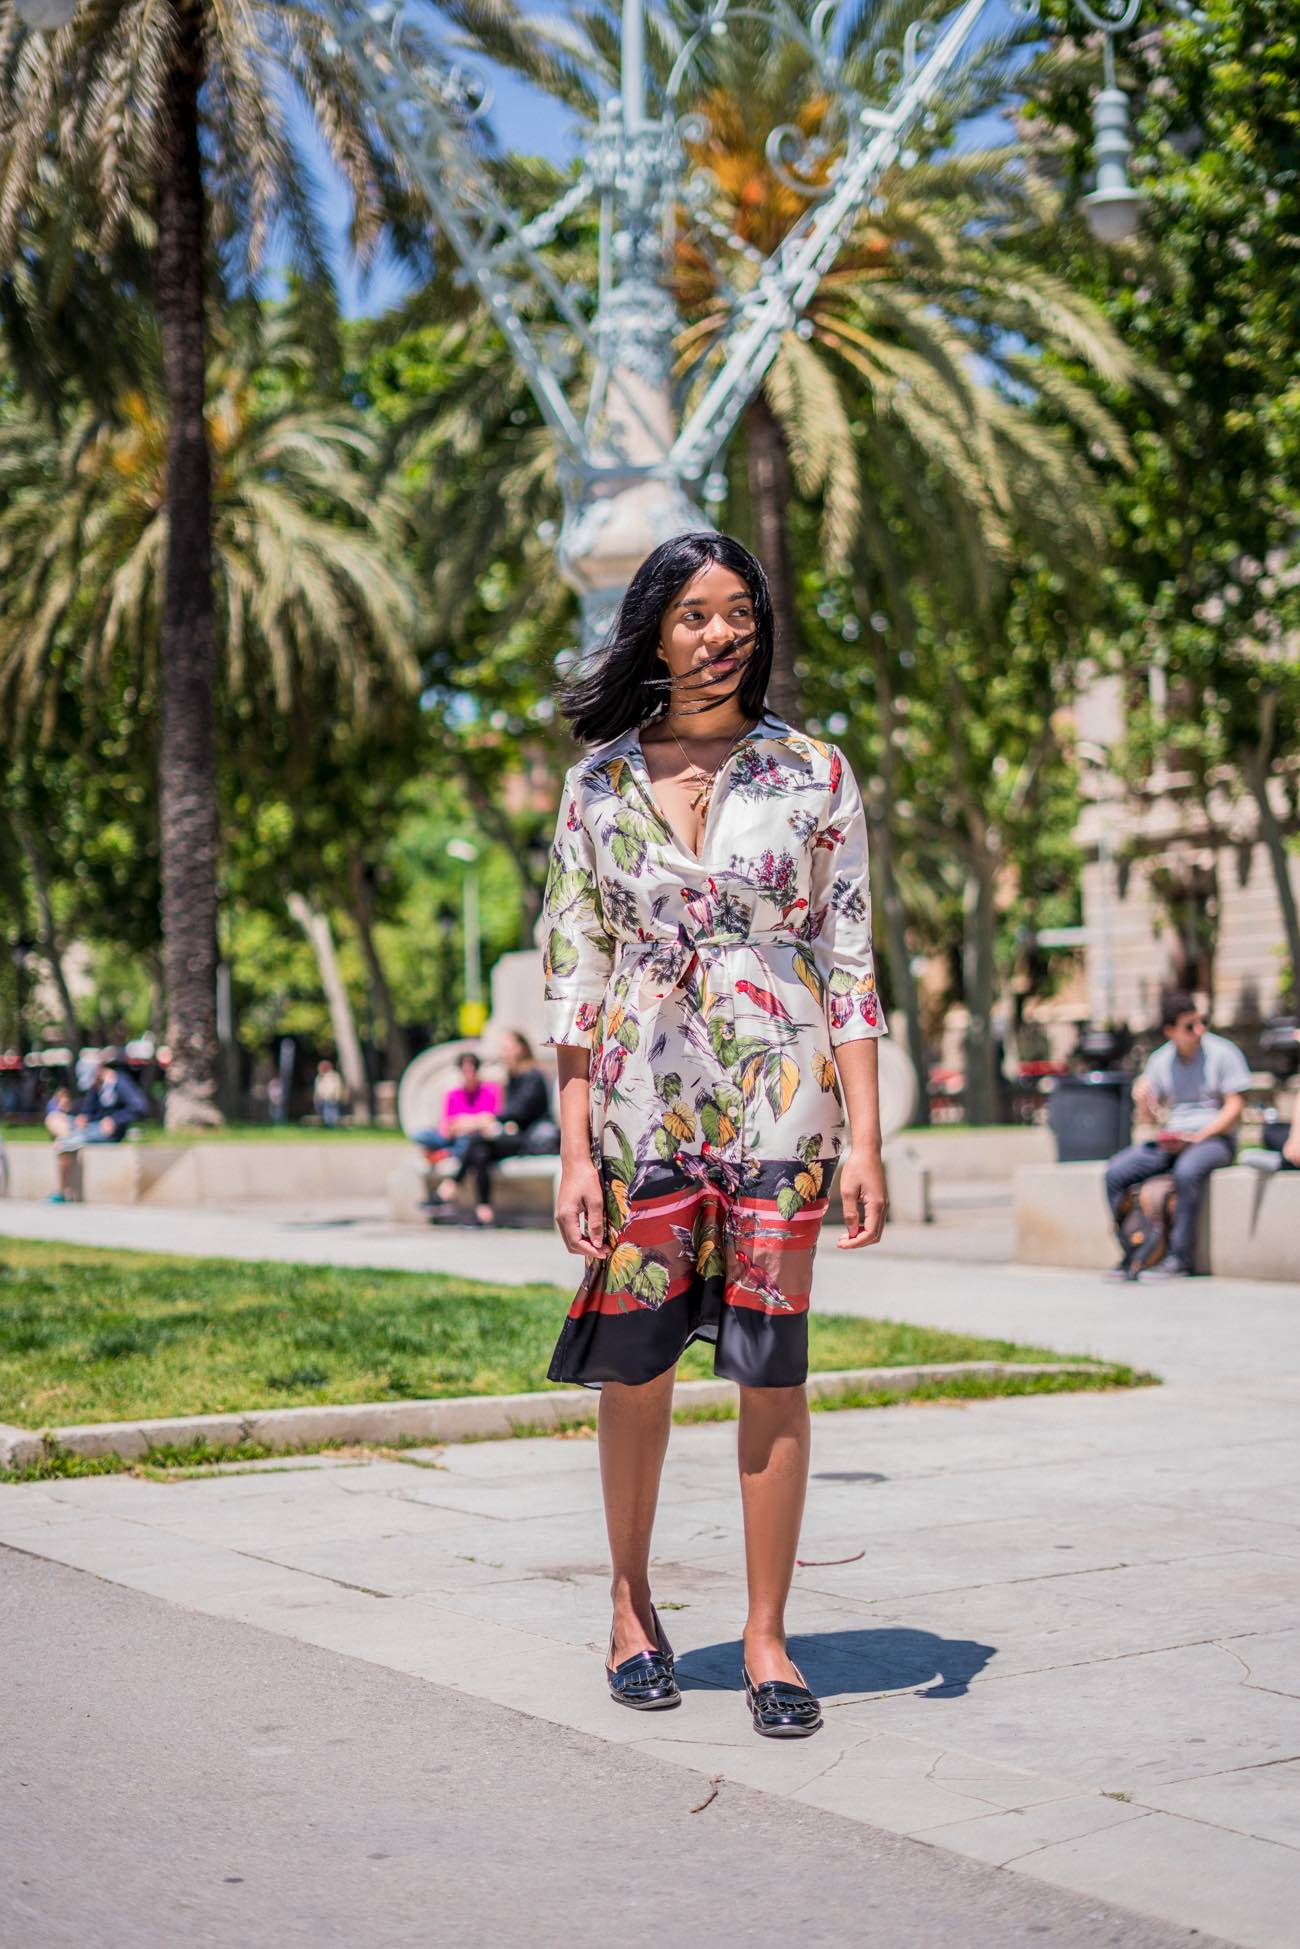 Pretty girl in a floral shirt dress - comparing yourself to others